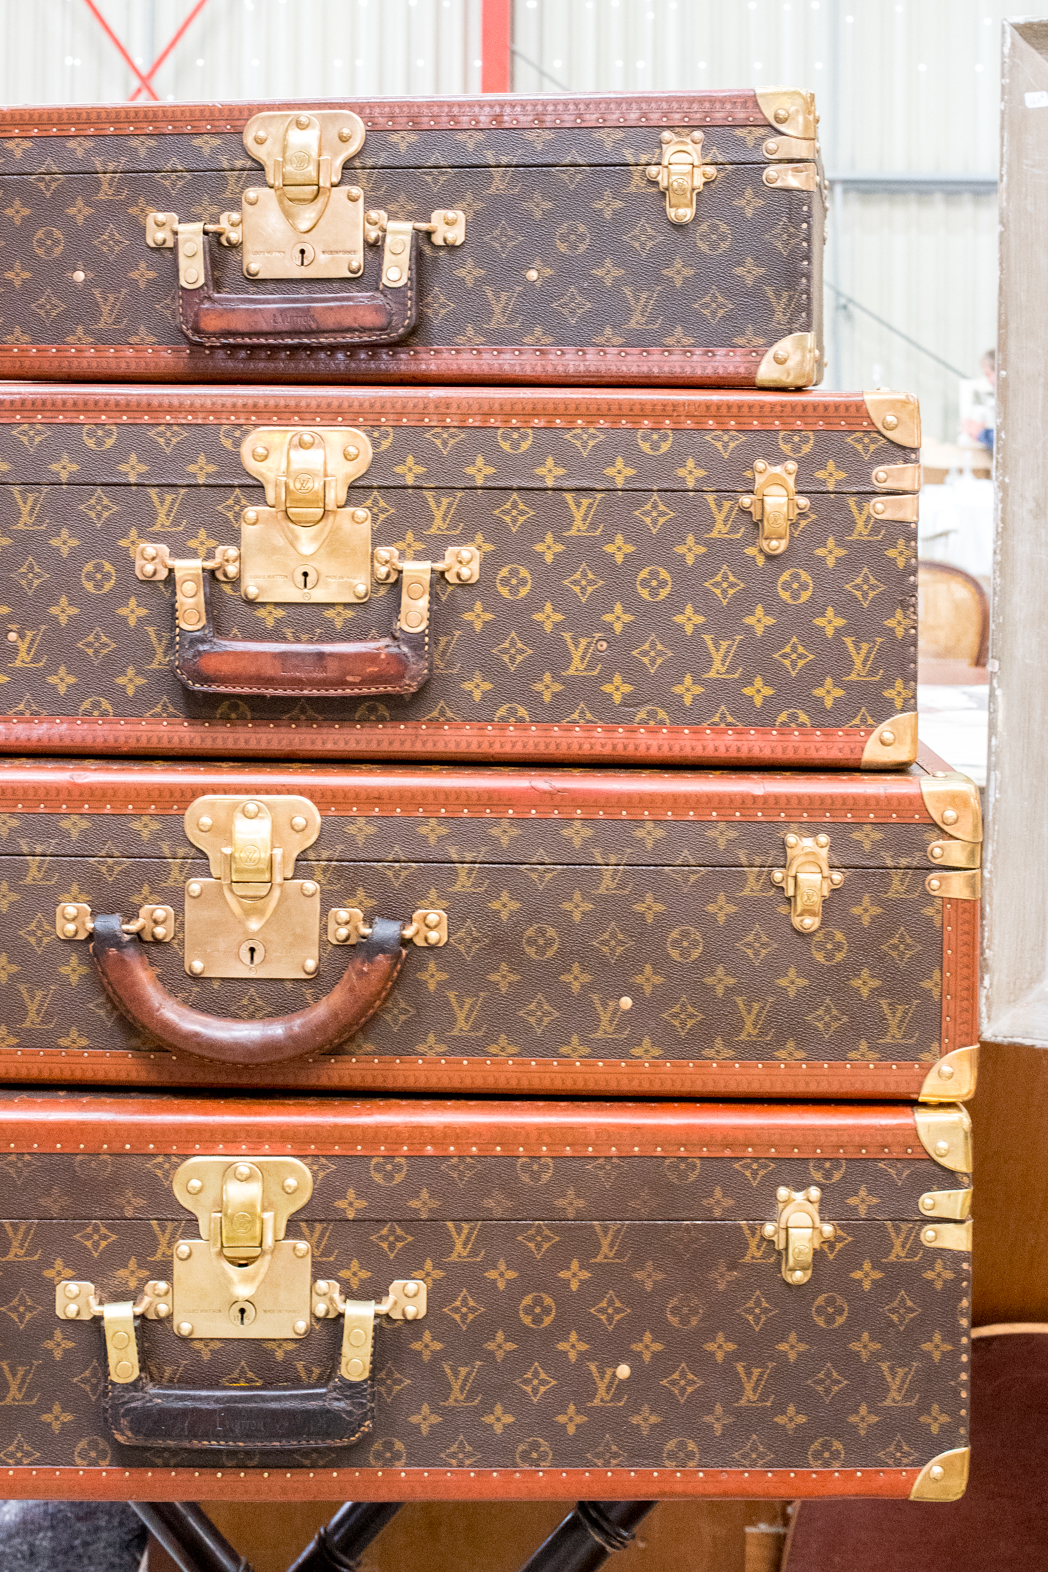 Stacie Flinner Louis Vuitton Luggage-1